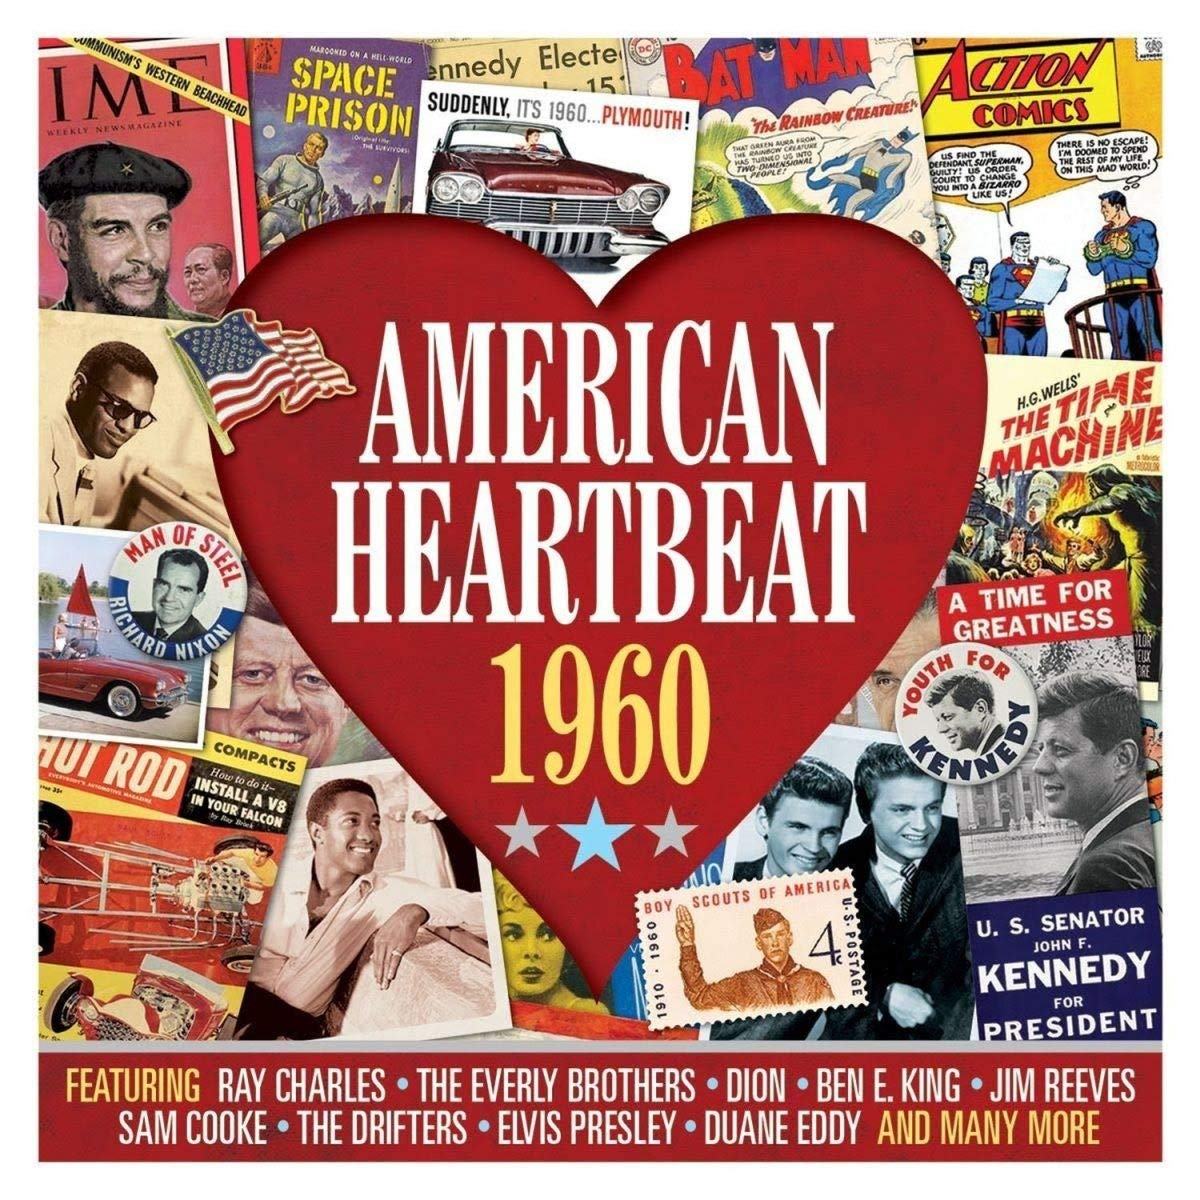 AMERICAN HEARTBEAT 1960: Ray Charles, Everly Brothers, Dion, Ben E.King, Jim Reeves, Drifters and More (2 CDS)